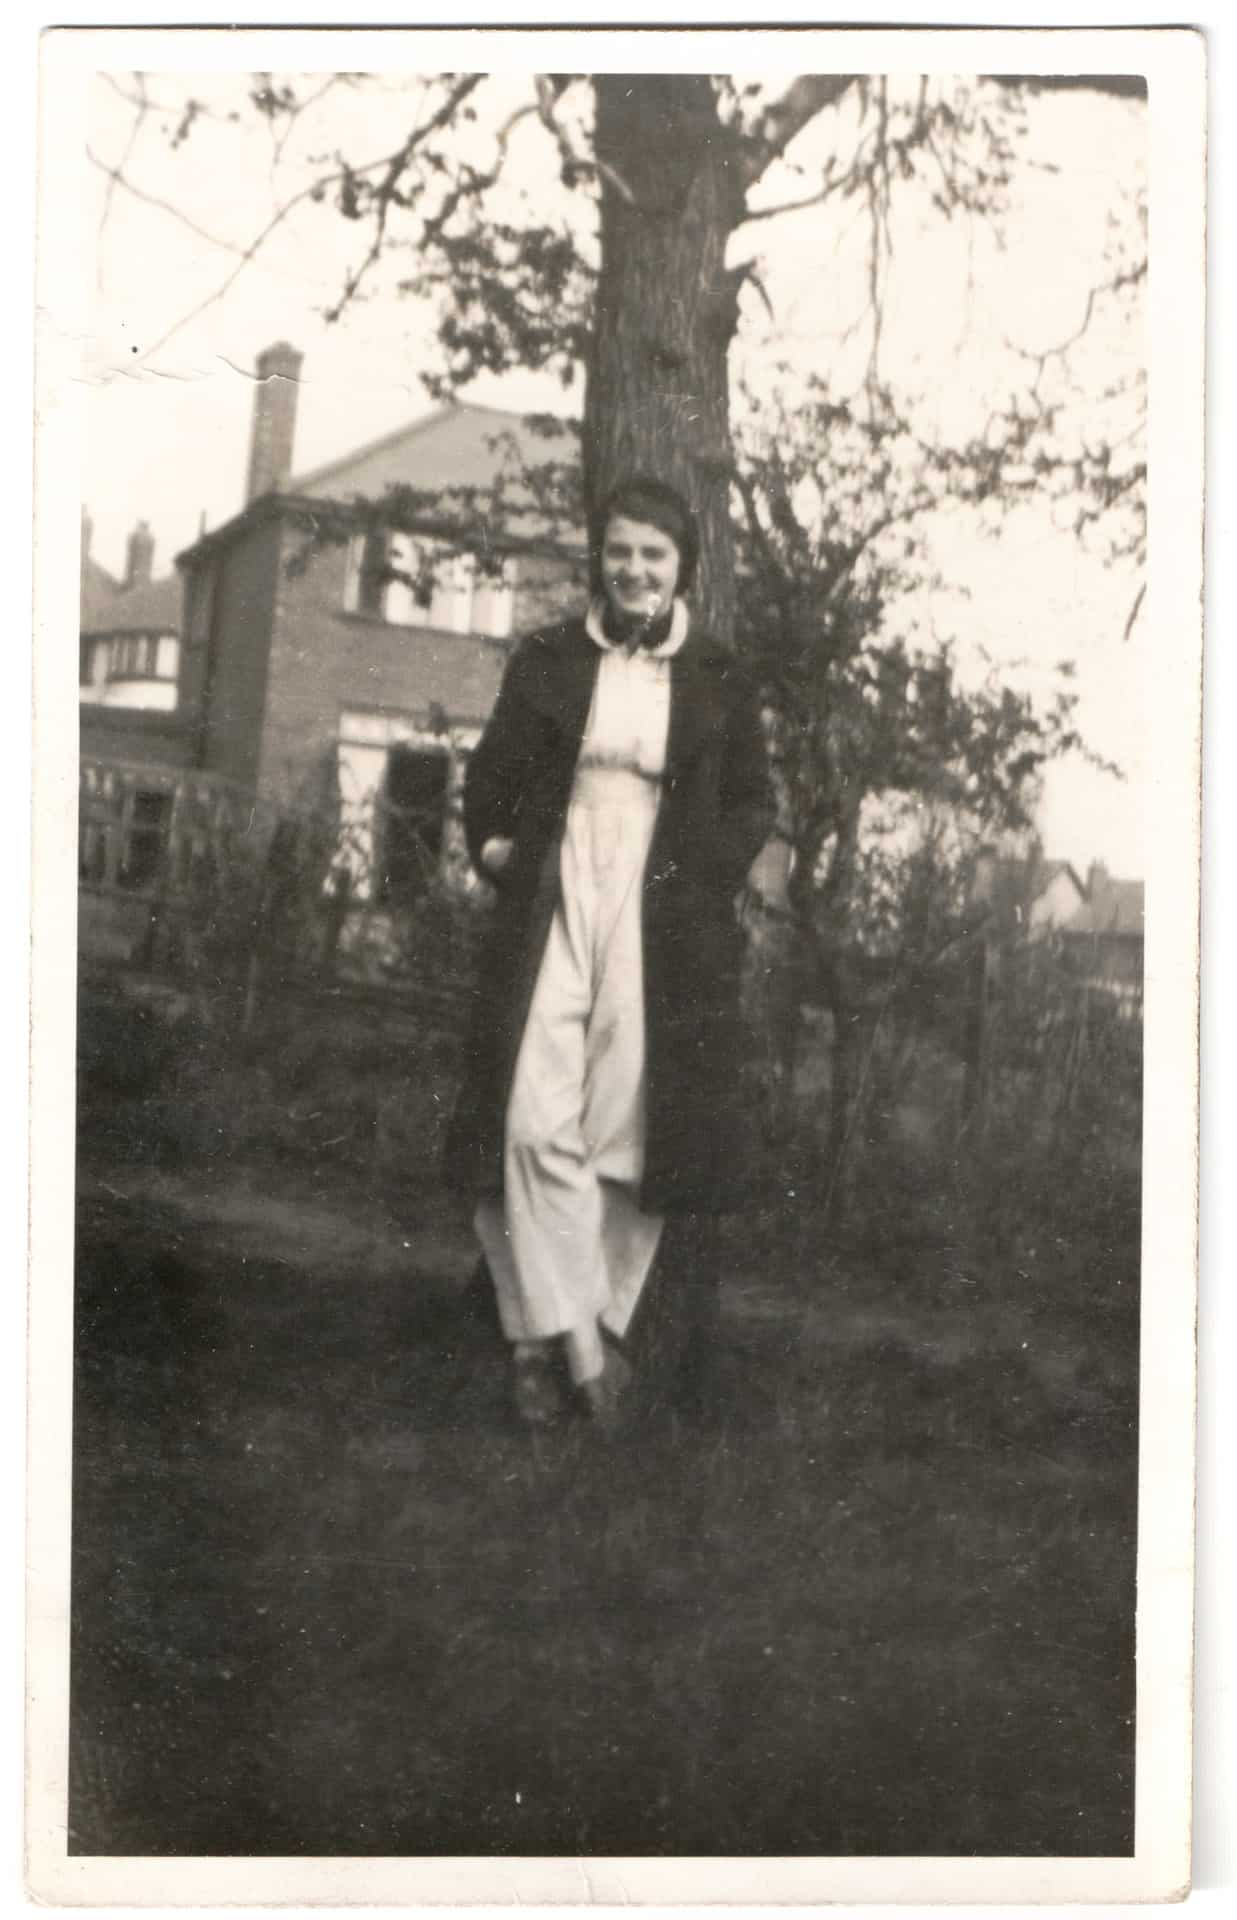 This is Auntie Gladys looking very dapper in her glamorous outfits, trousers if you've noticed, which a lot of ladies didn't wear trousers back then. I would say she's about 17, 18, and it was taken at Haden Hill Park at the back of Cradley Heath.